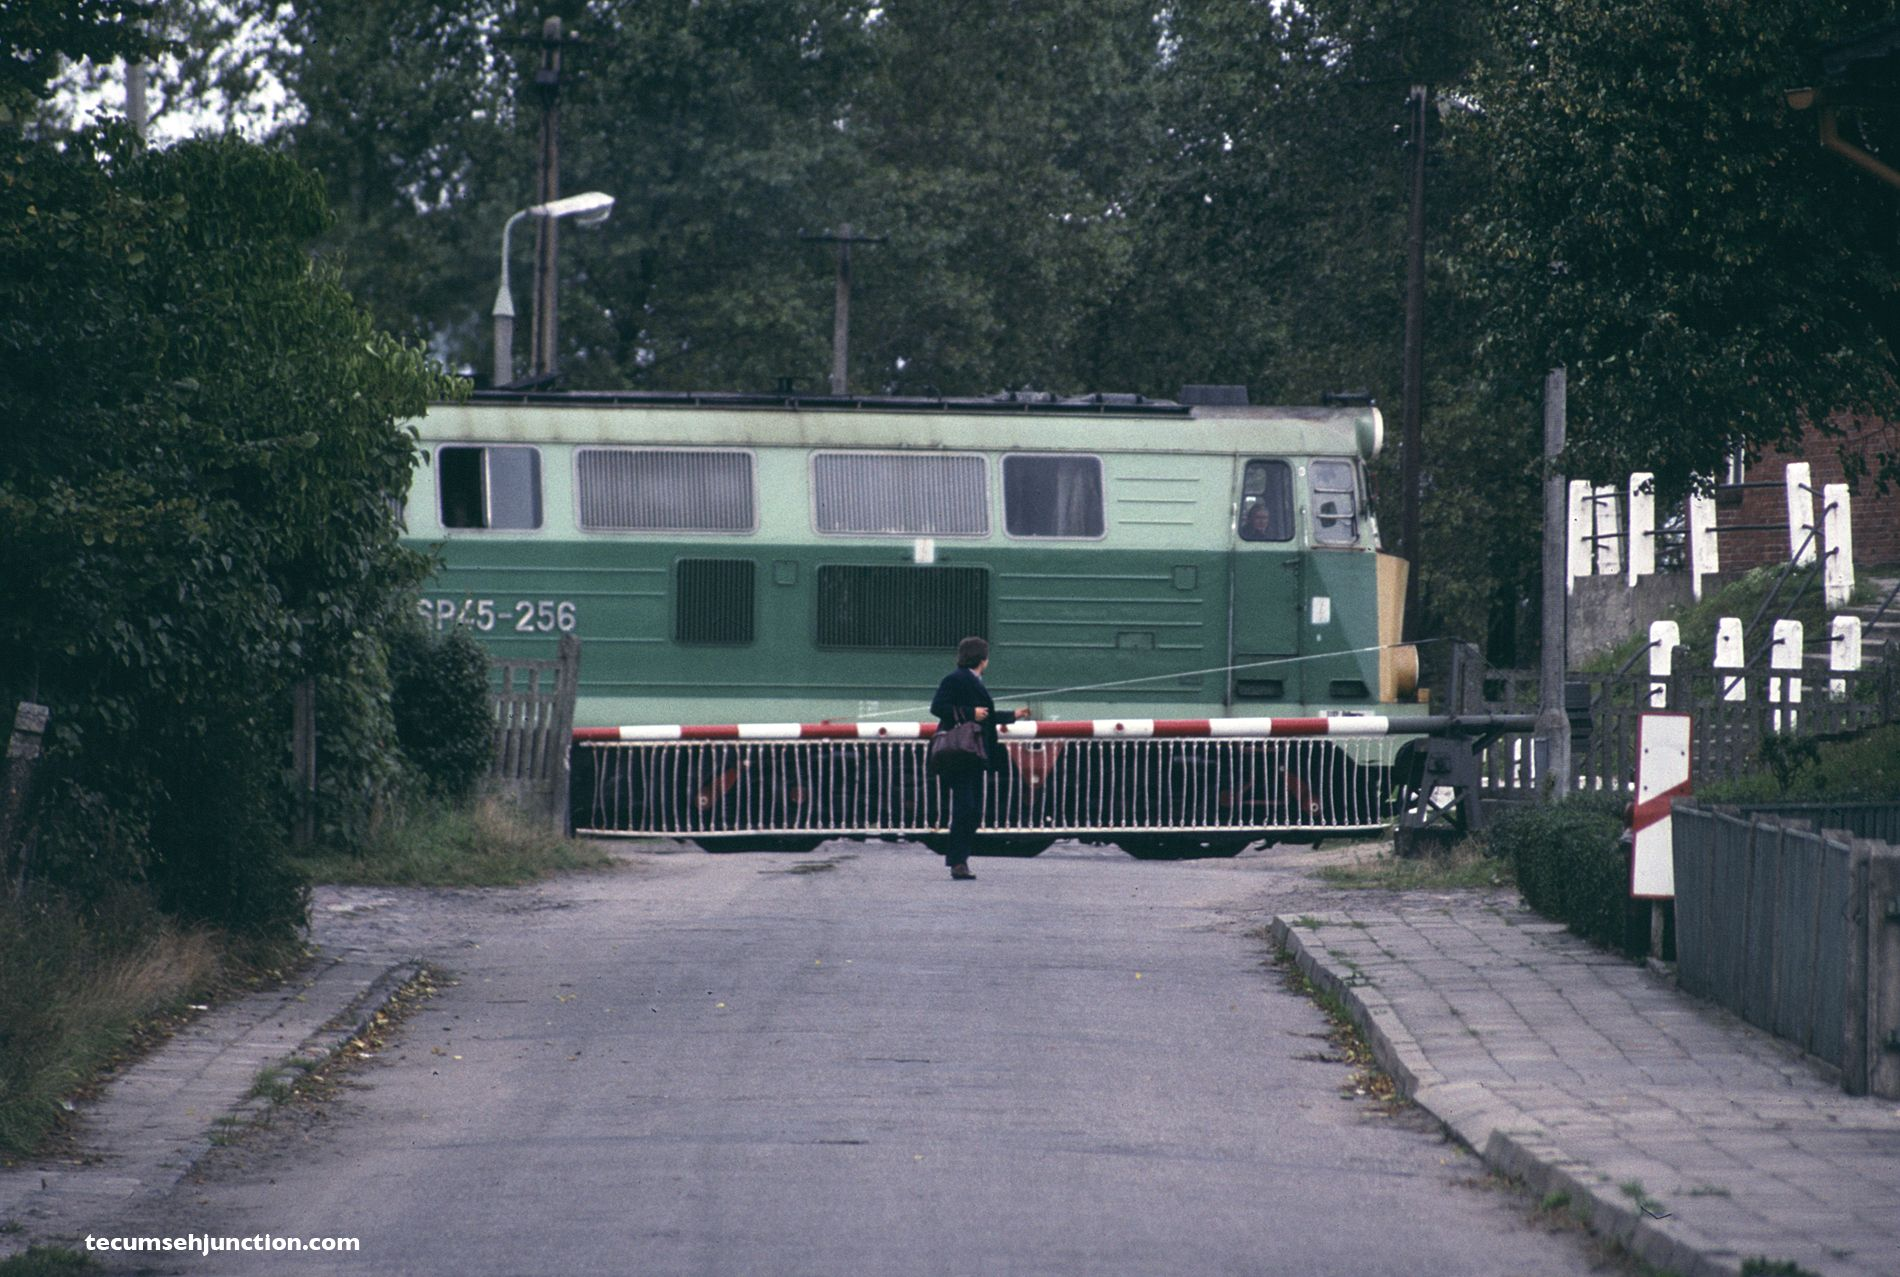 PKP SP45-256 leads an eastbound local train out of the station at Łąg, Poland